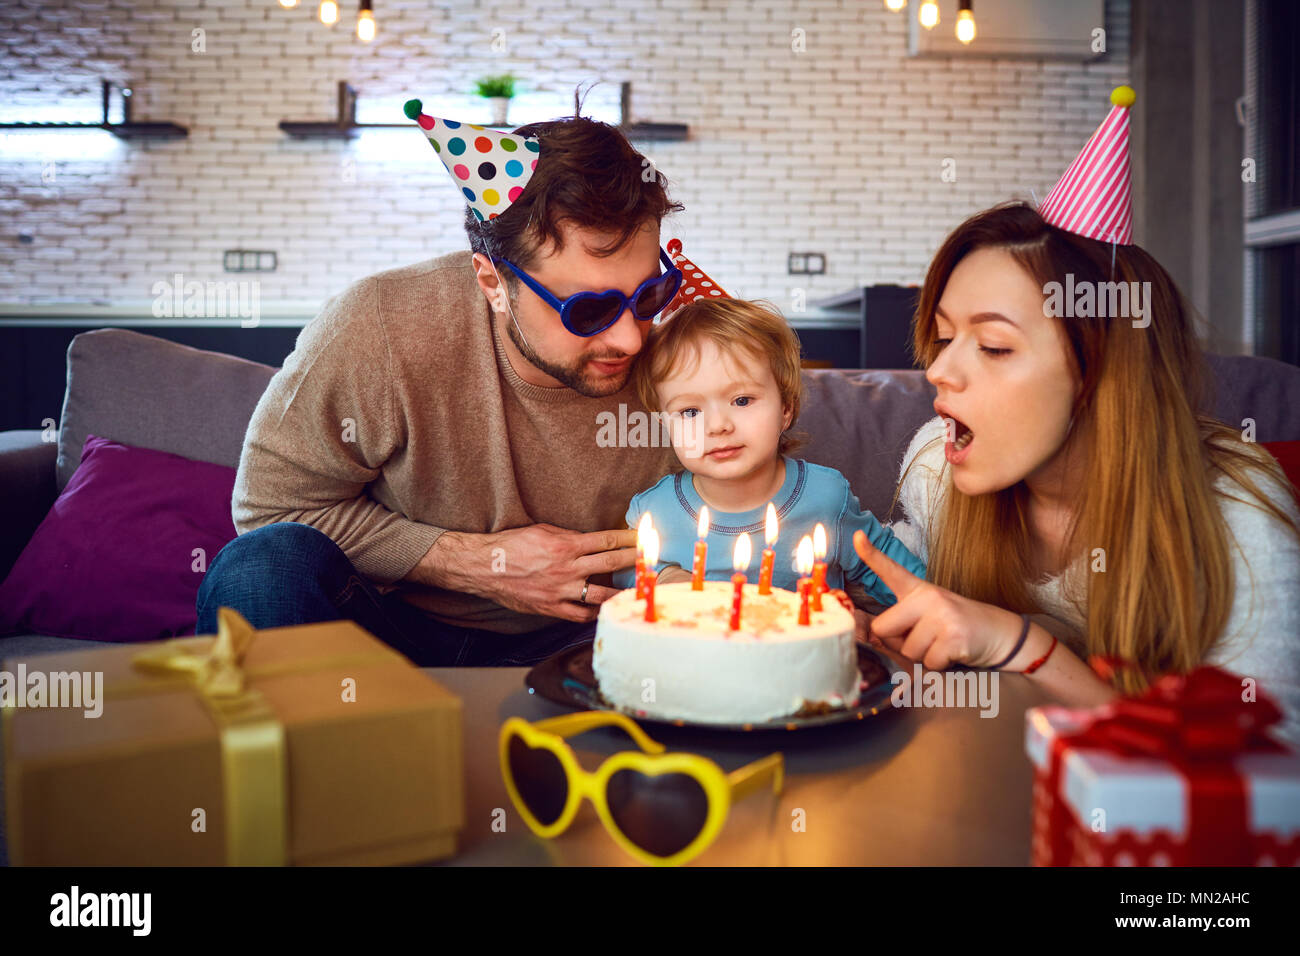 Parents with a cake  congratulate their child on his birthday. - Stock Image